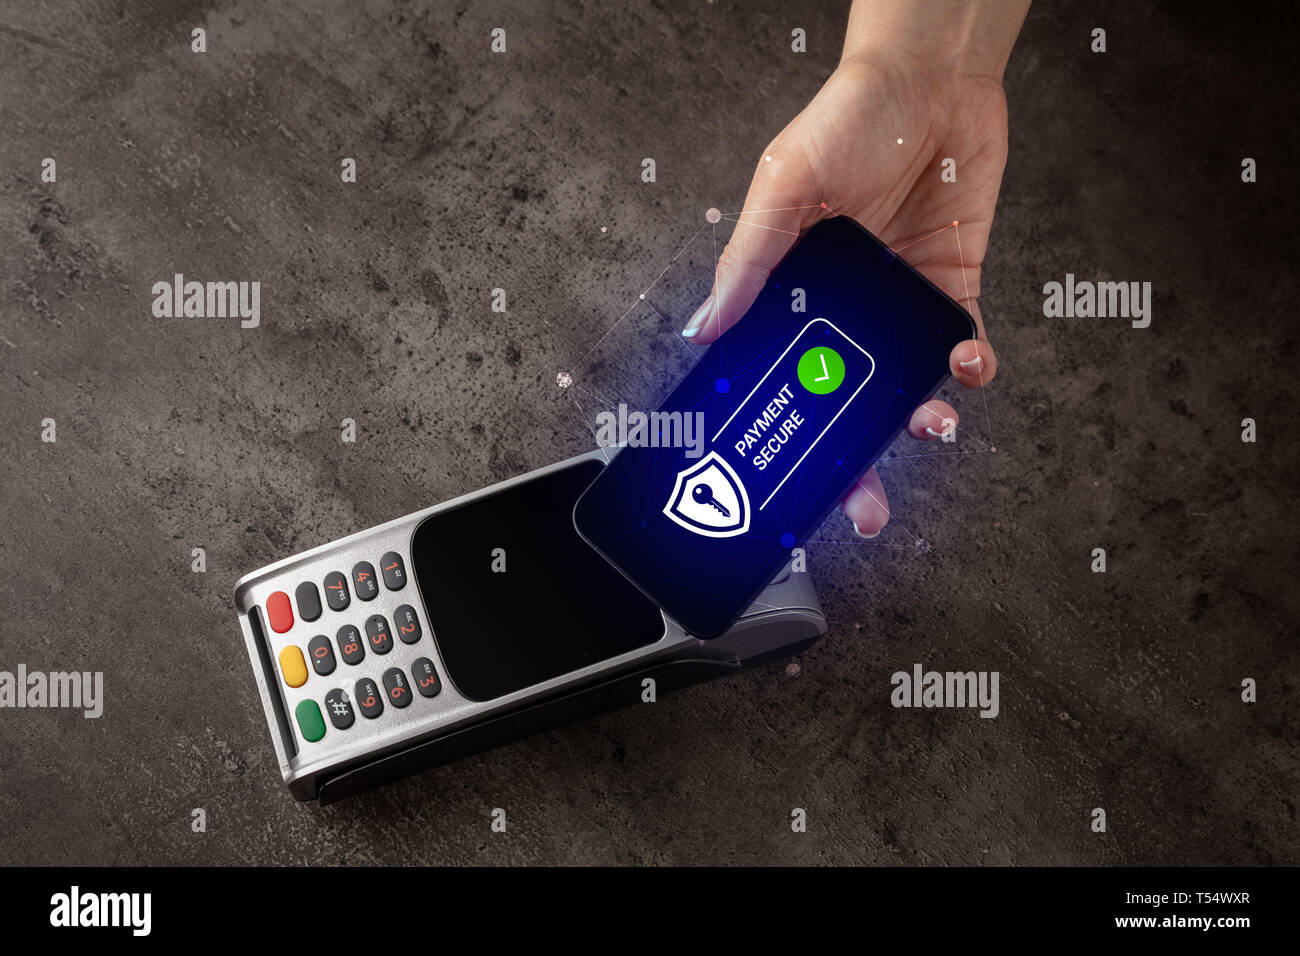 Hand paying on terminal with smartphone in secure payment system  - Stock Image